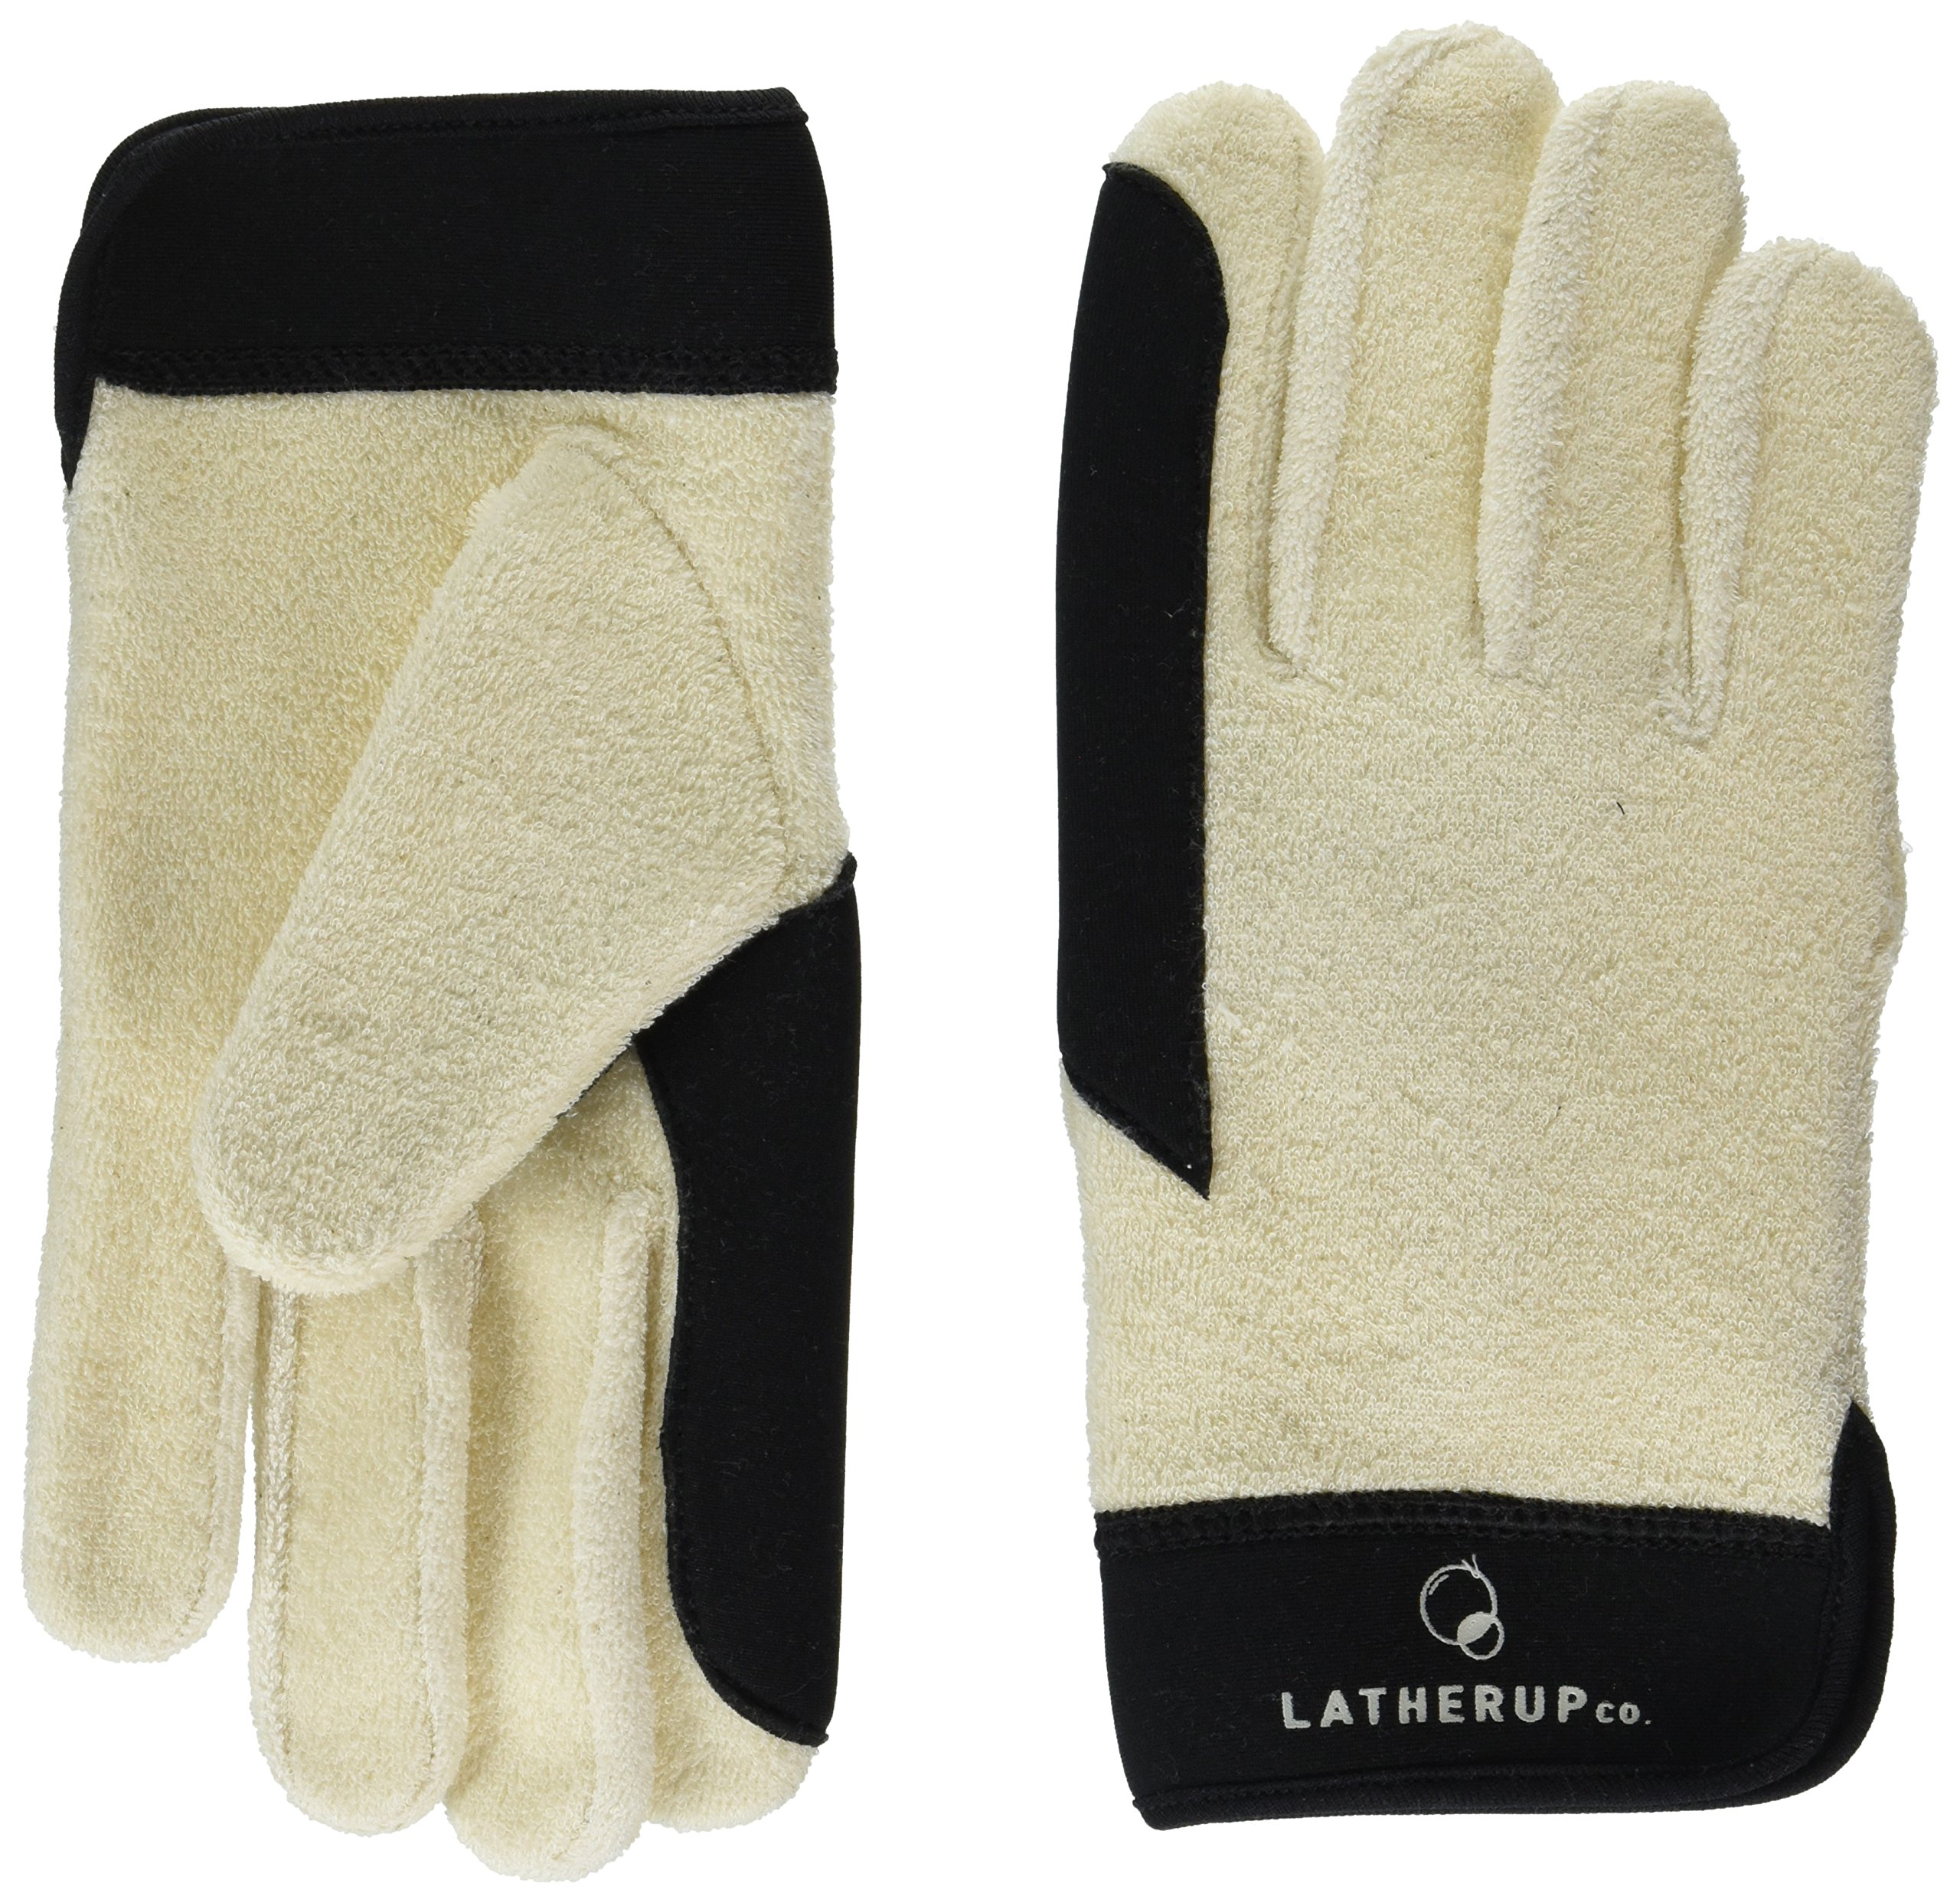 LATHERUP CO. LatherMitts, Medium by Lather Up®